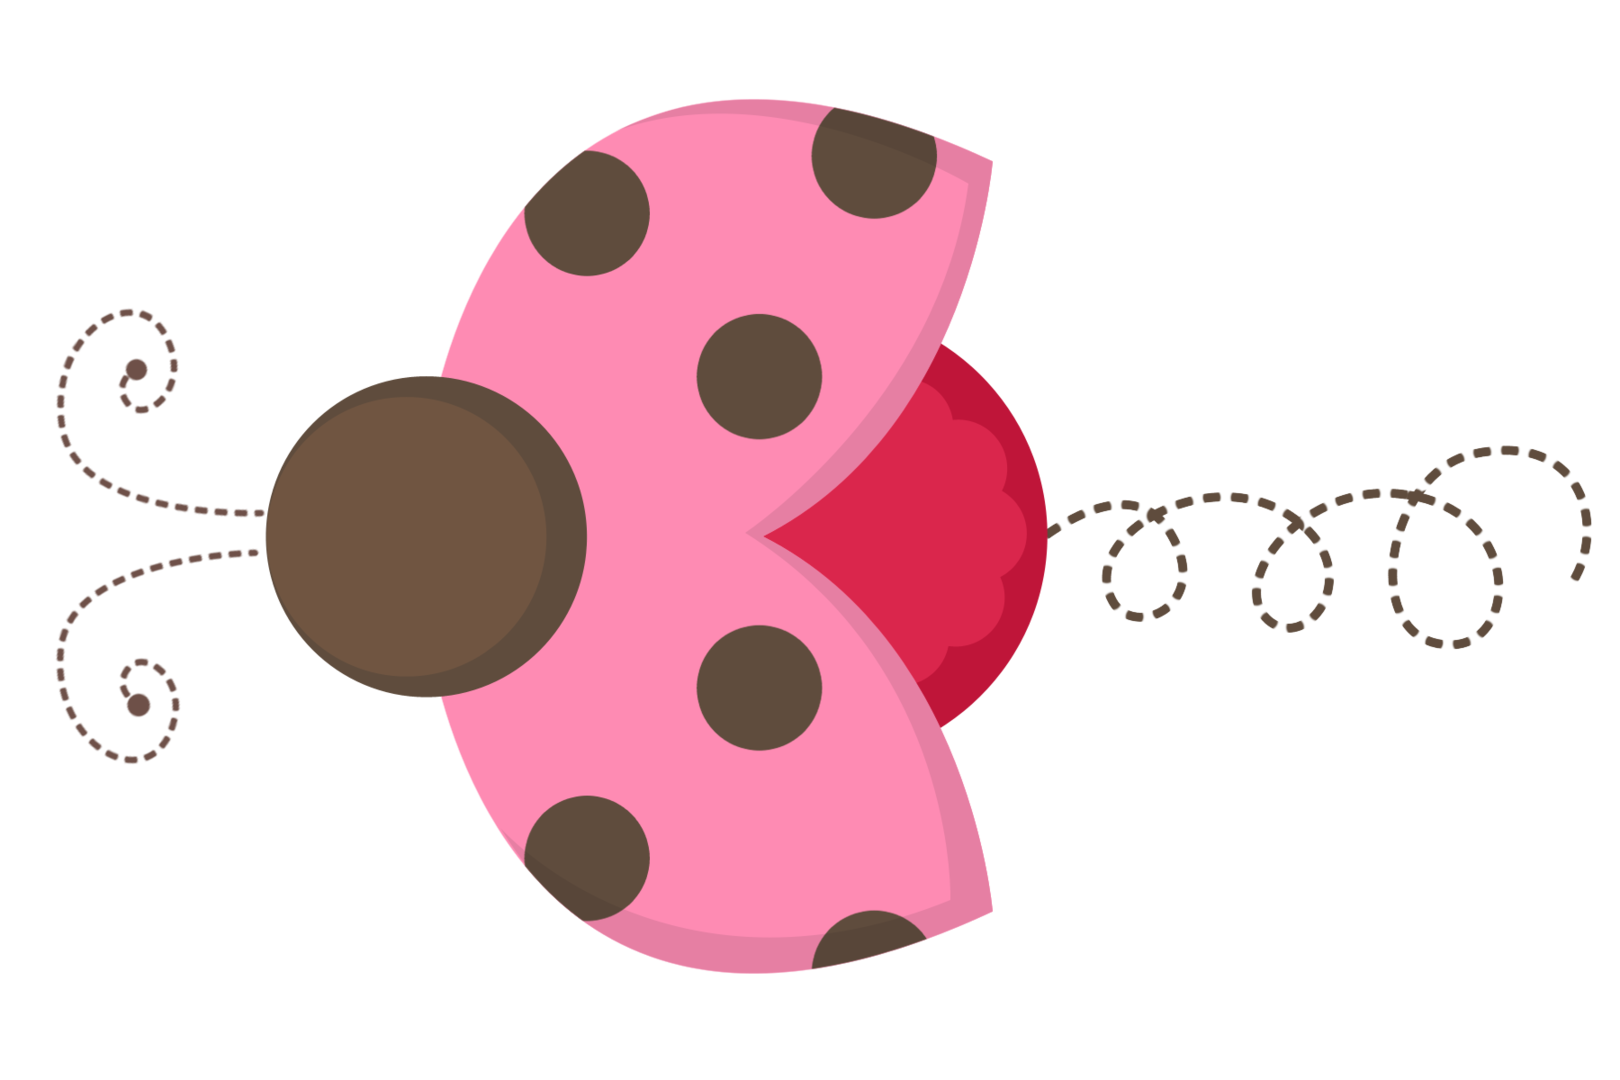 Ladybug on a flower clipart free vector freeuse library 4shared - exibir todas as imagens na pasta Pink and brown ladybugs ... vector freeuse library